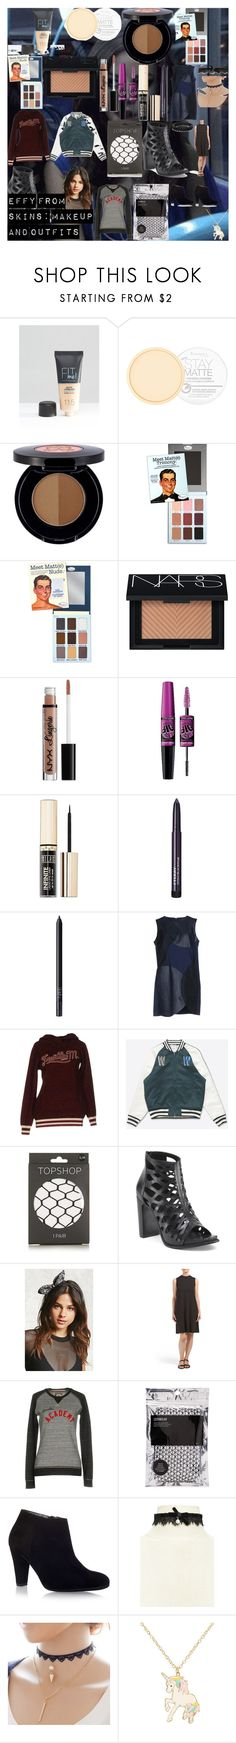 Effy from Skins: Makeup and Outfits by oroartye-1 on Polyvore featuring beauty, NARS Cosmetics, Anastasia Beverly Hills, Rimmel, NYX, Maybelline, Milani, By Terry, Forever 21 and claire's